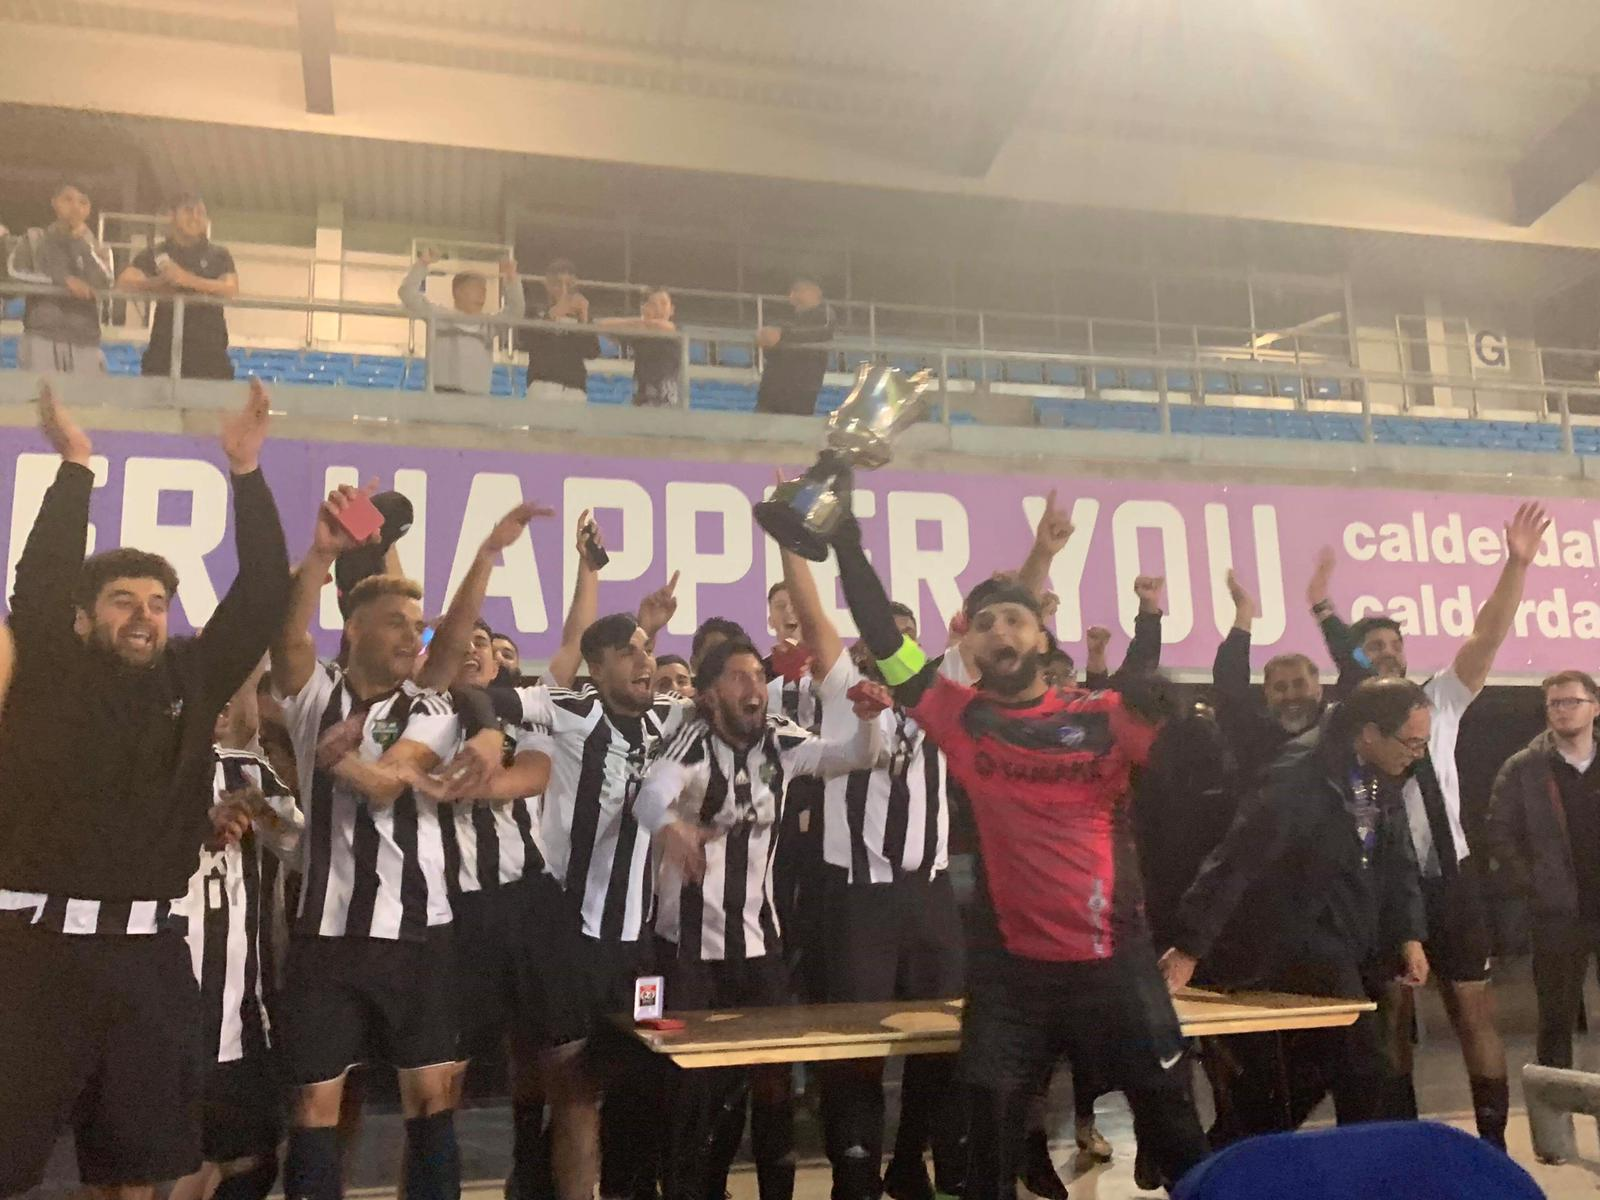 Ten men FC Panda clinch cup after thrilling 7-6 penalty shoot-out